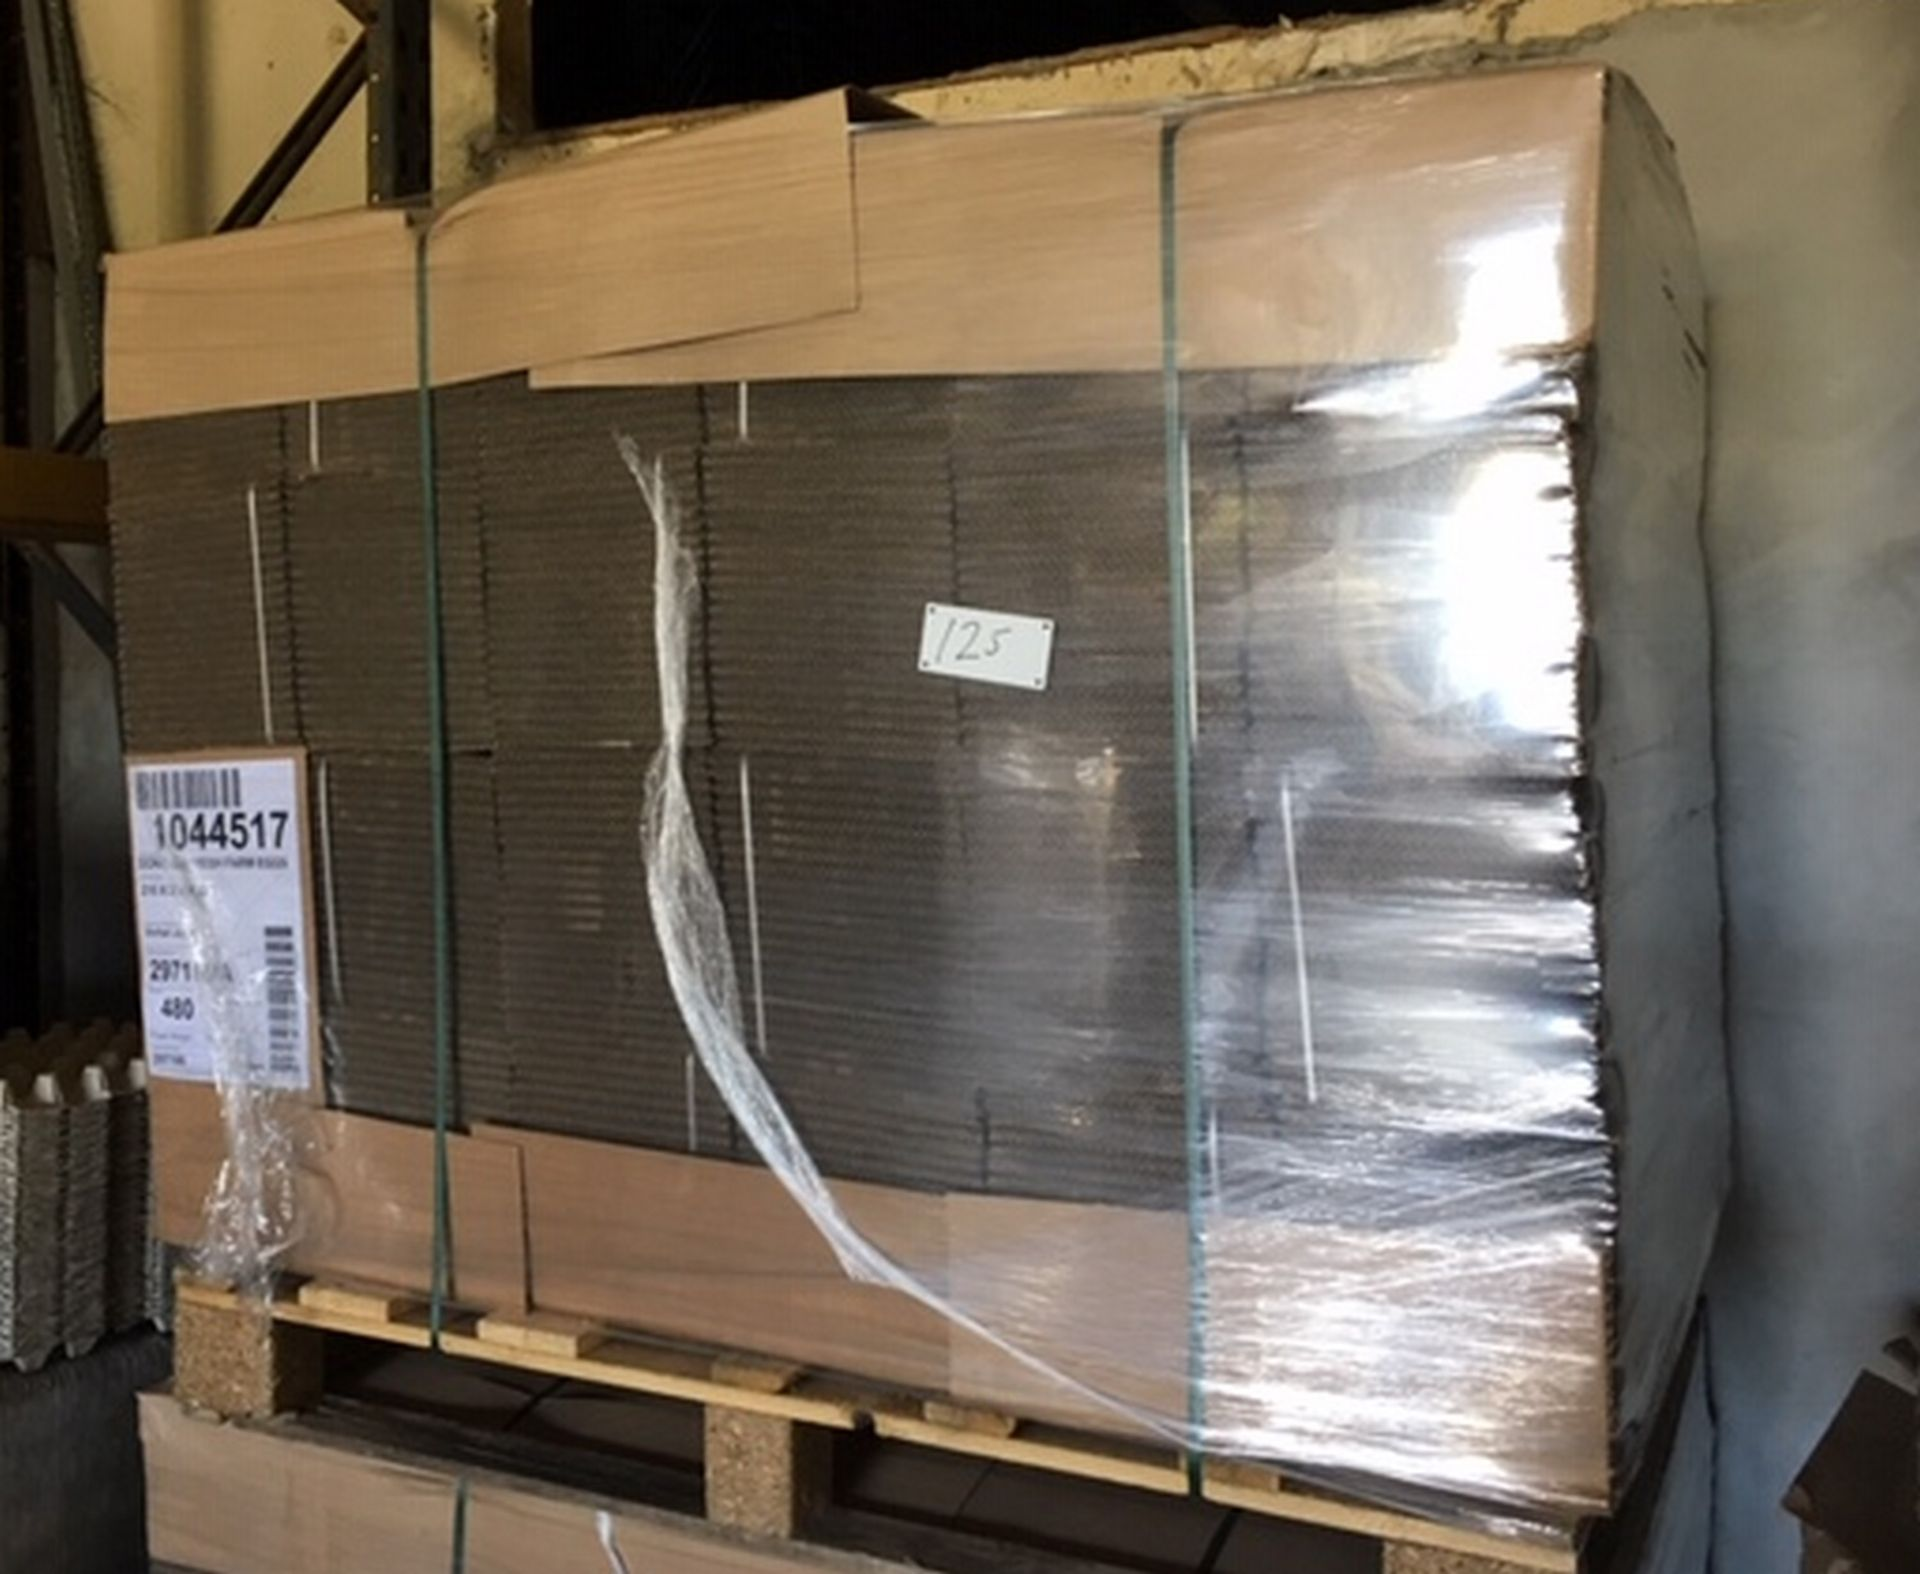 Lot 125 - Pallet of 480 Cardboard Boxes 210mm x 210mm x 232mm.